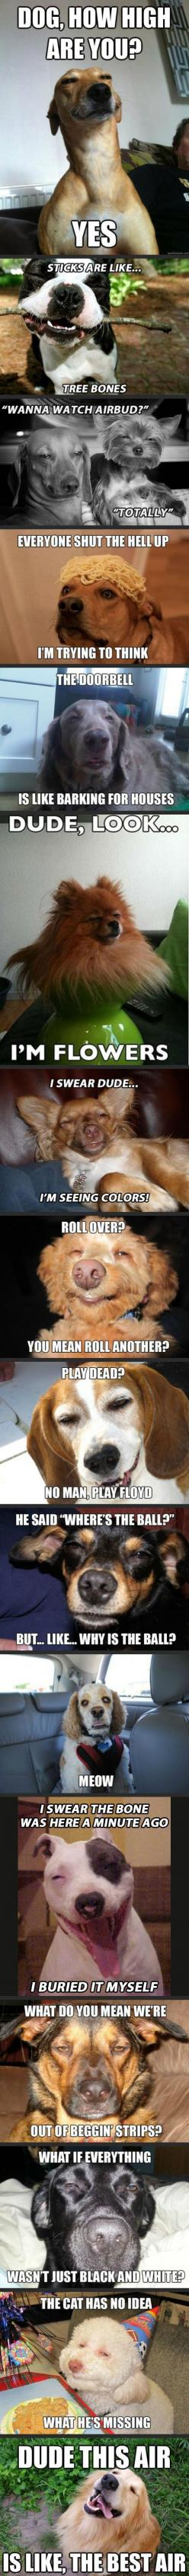 Dogs!: Animals, Funny Dogs, Stoned Dogs, Stoner Dog, High Dogs, Funny Stuff, Funnies, So Funny